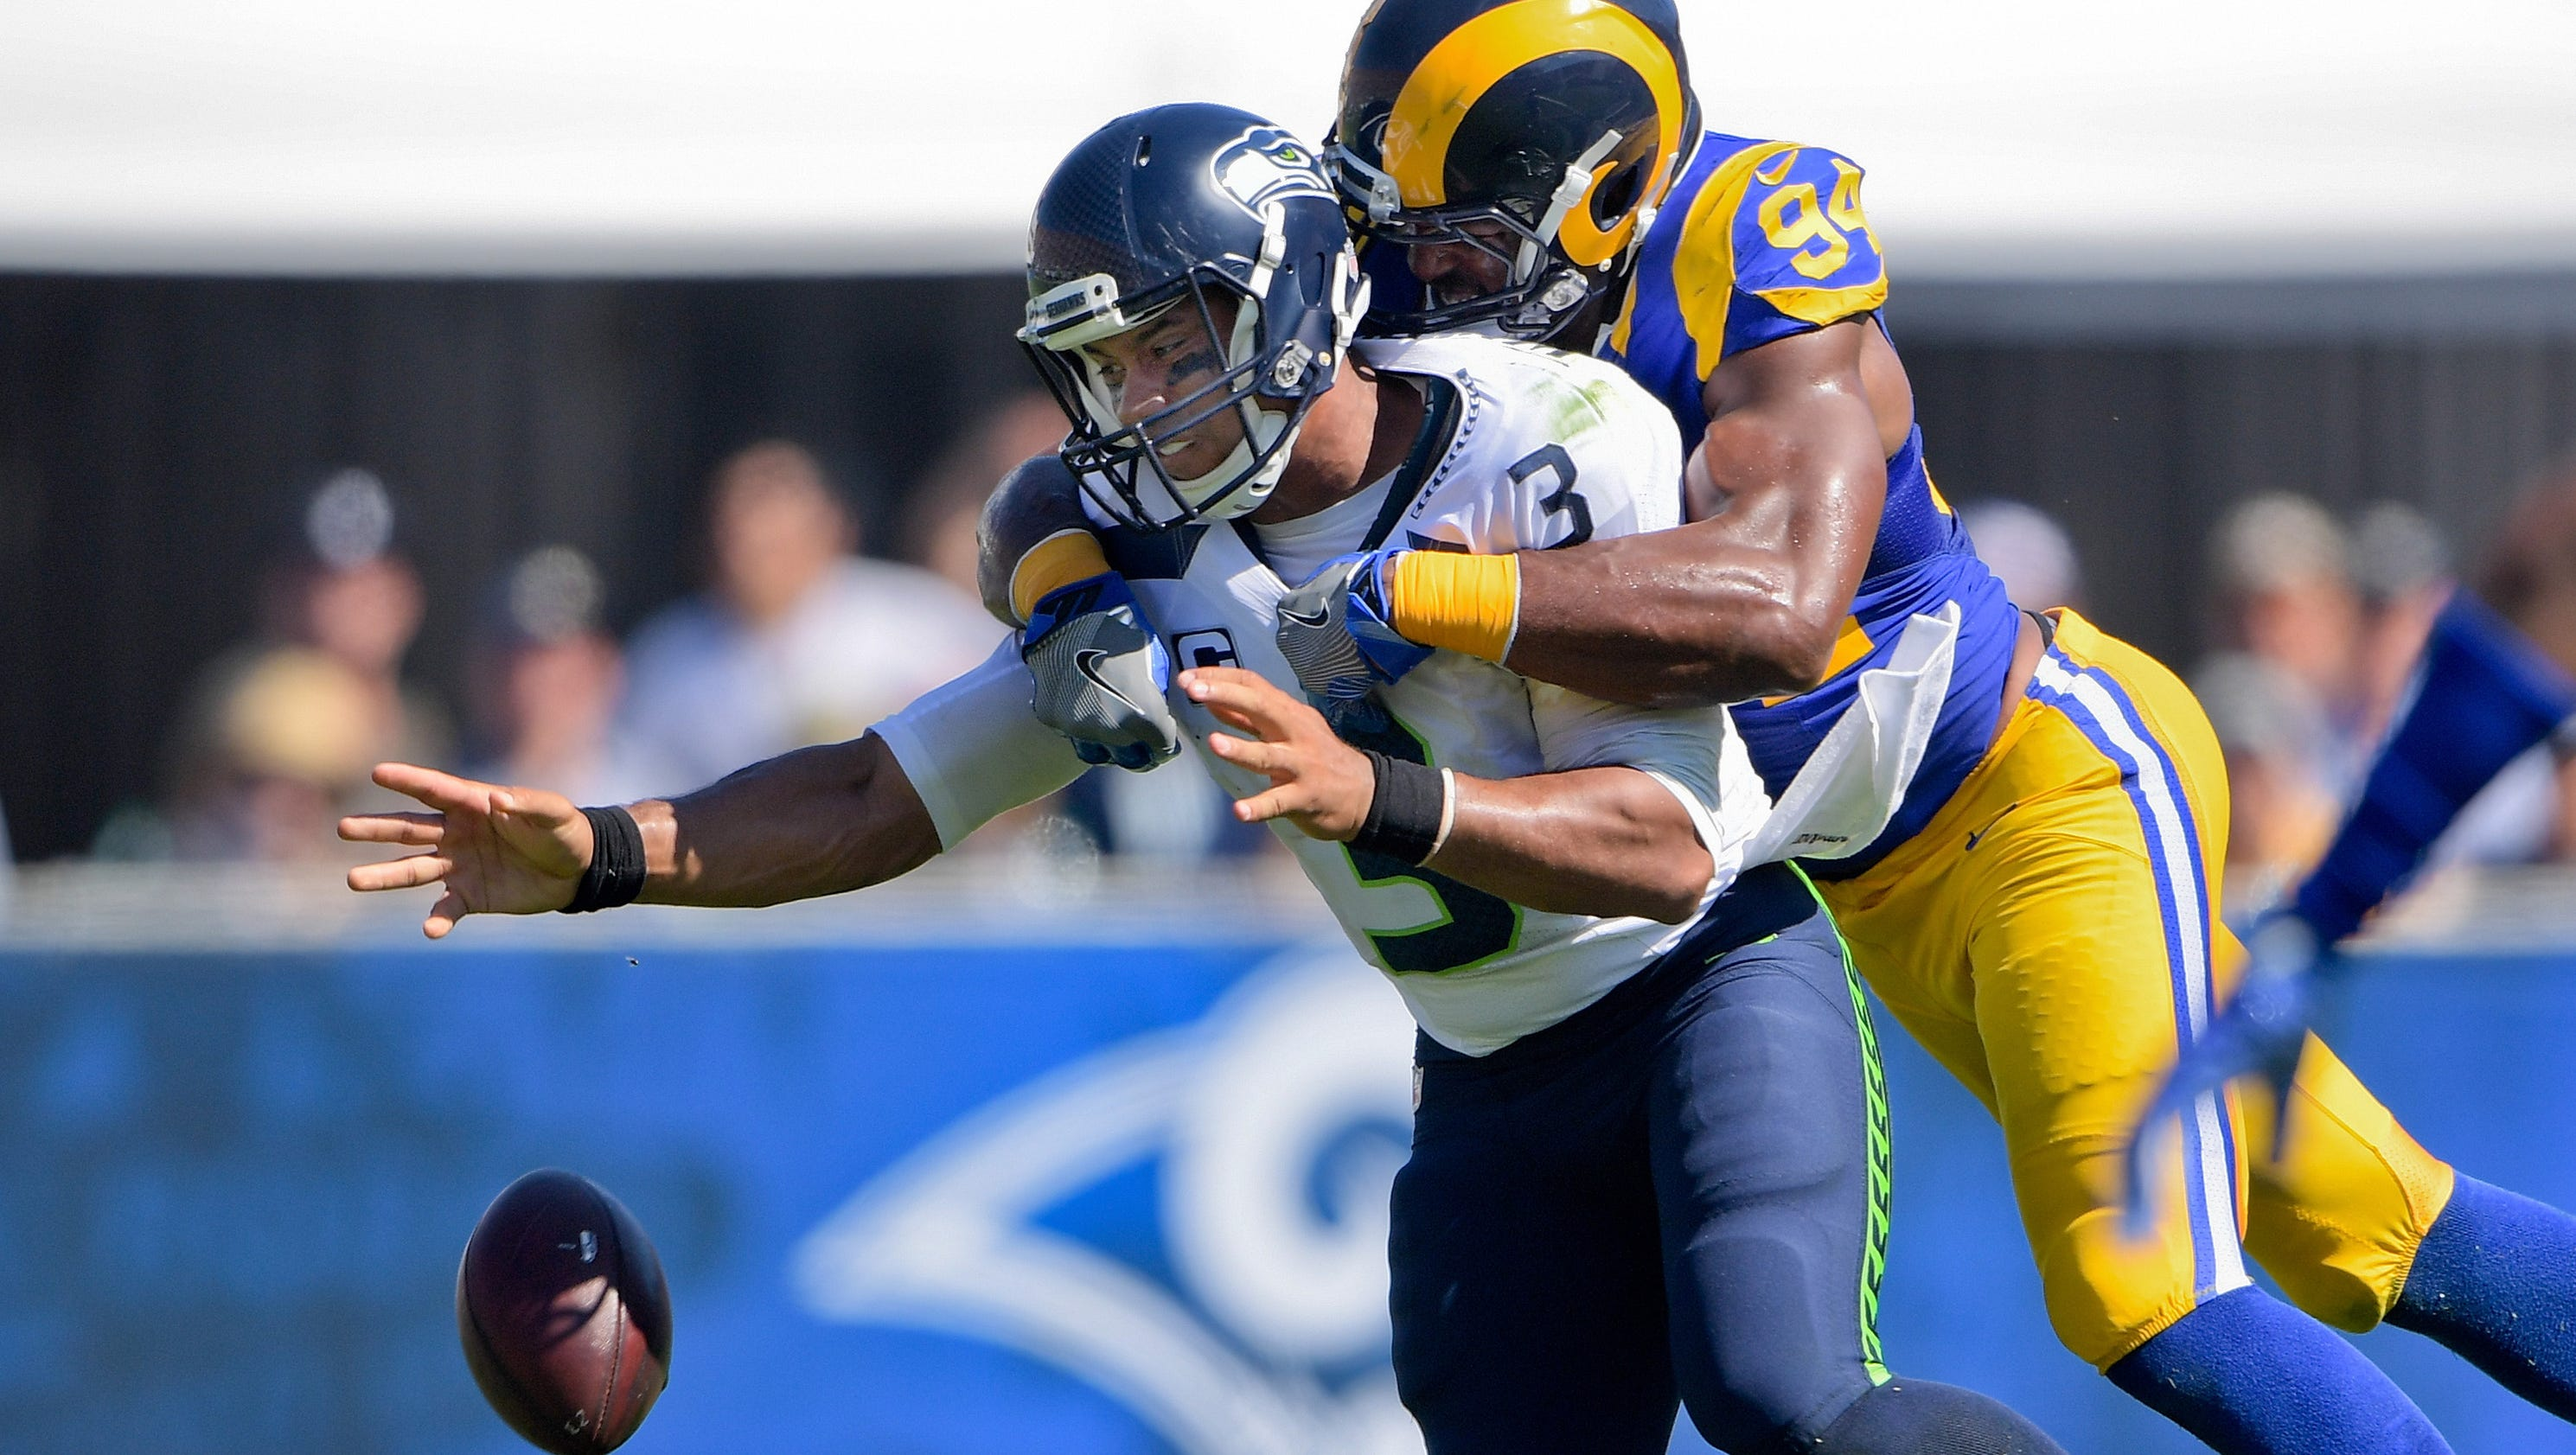 NFL Week 2 overreactions: Is Seahawks offense cause for panic?